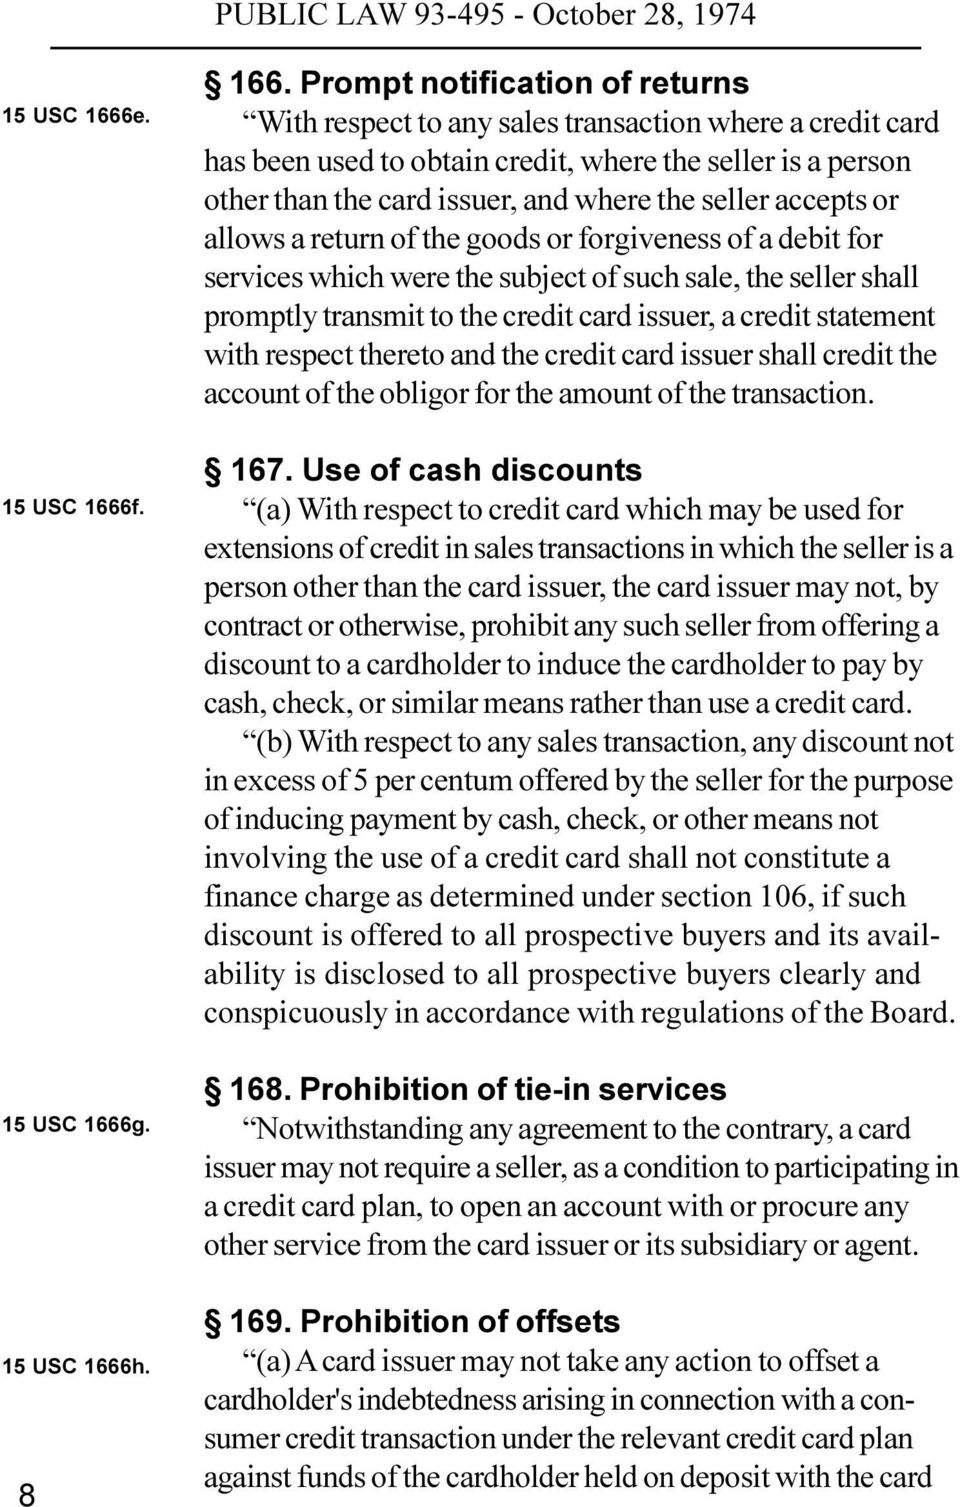 accepts or allows a return of the goods or forgiveness of a debit for services which were the subject of such sale, the seller shall promptly transmit to the credit card issuer, a credit statement